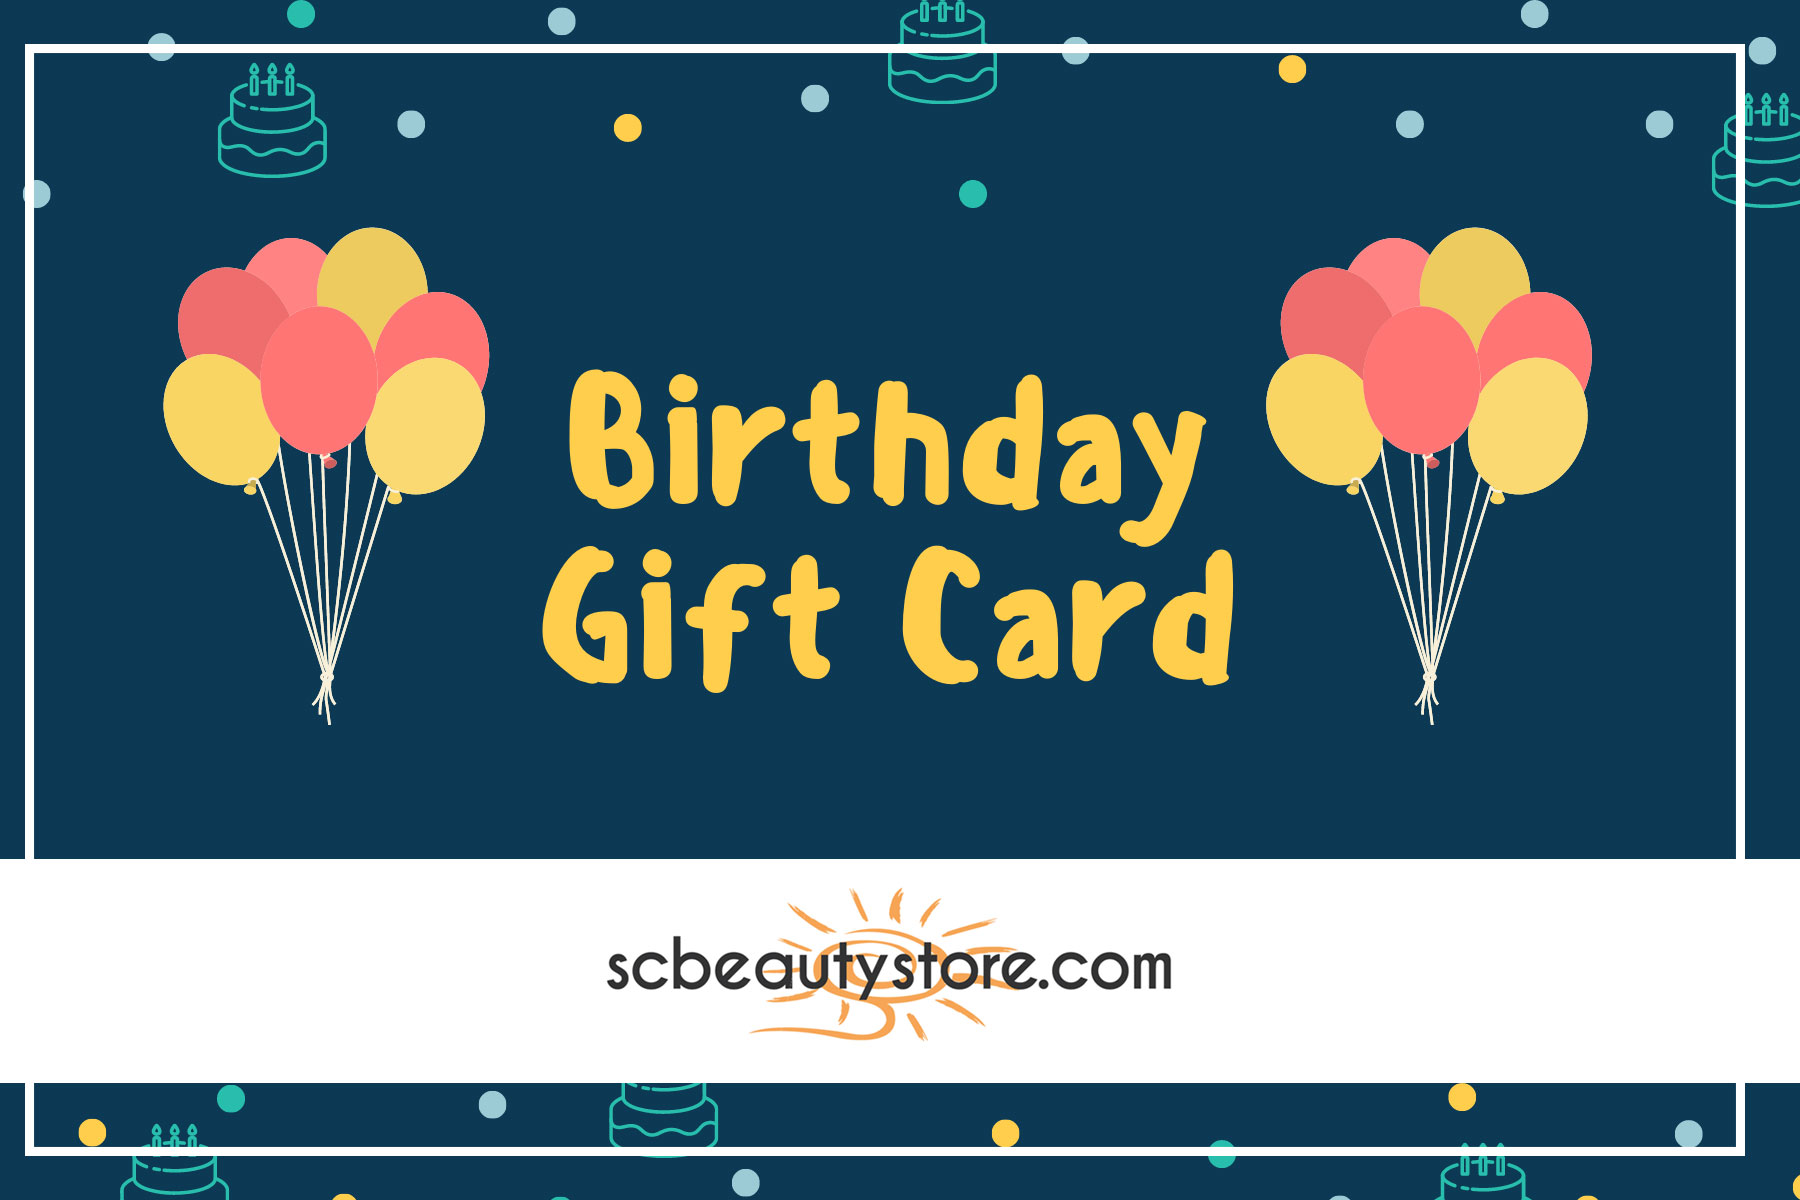 Birthday-Gift-card